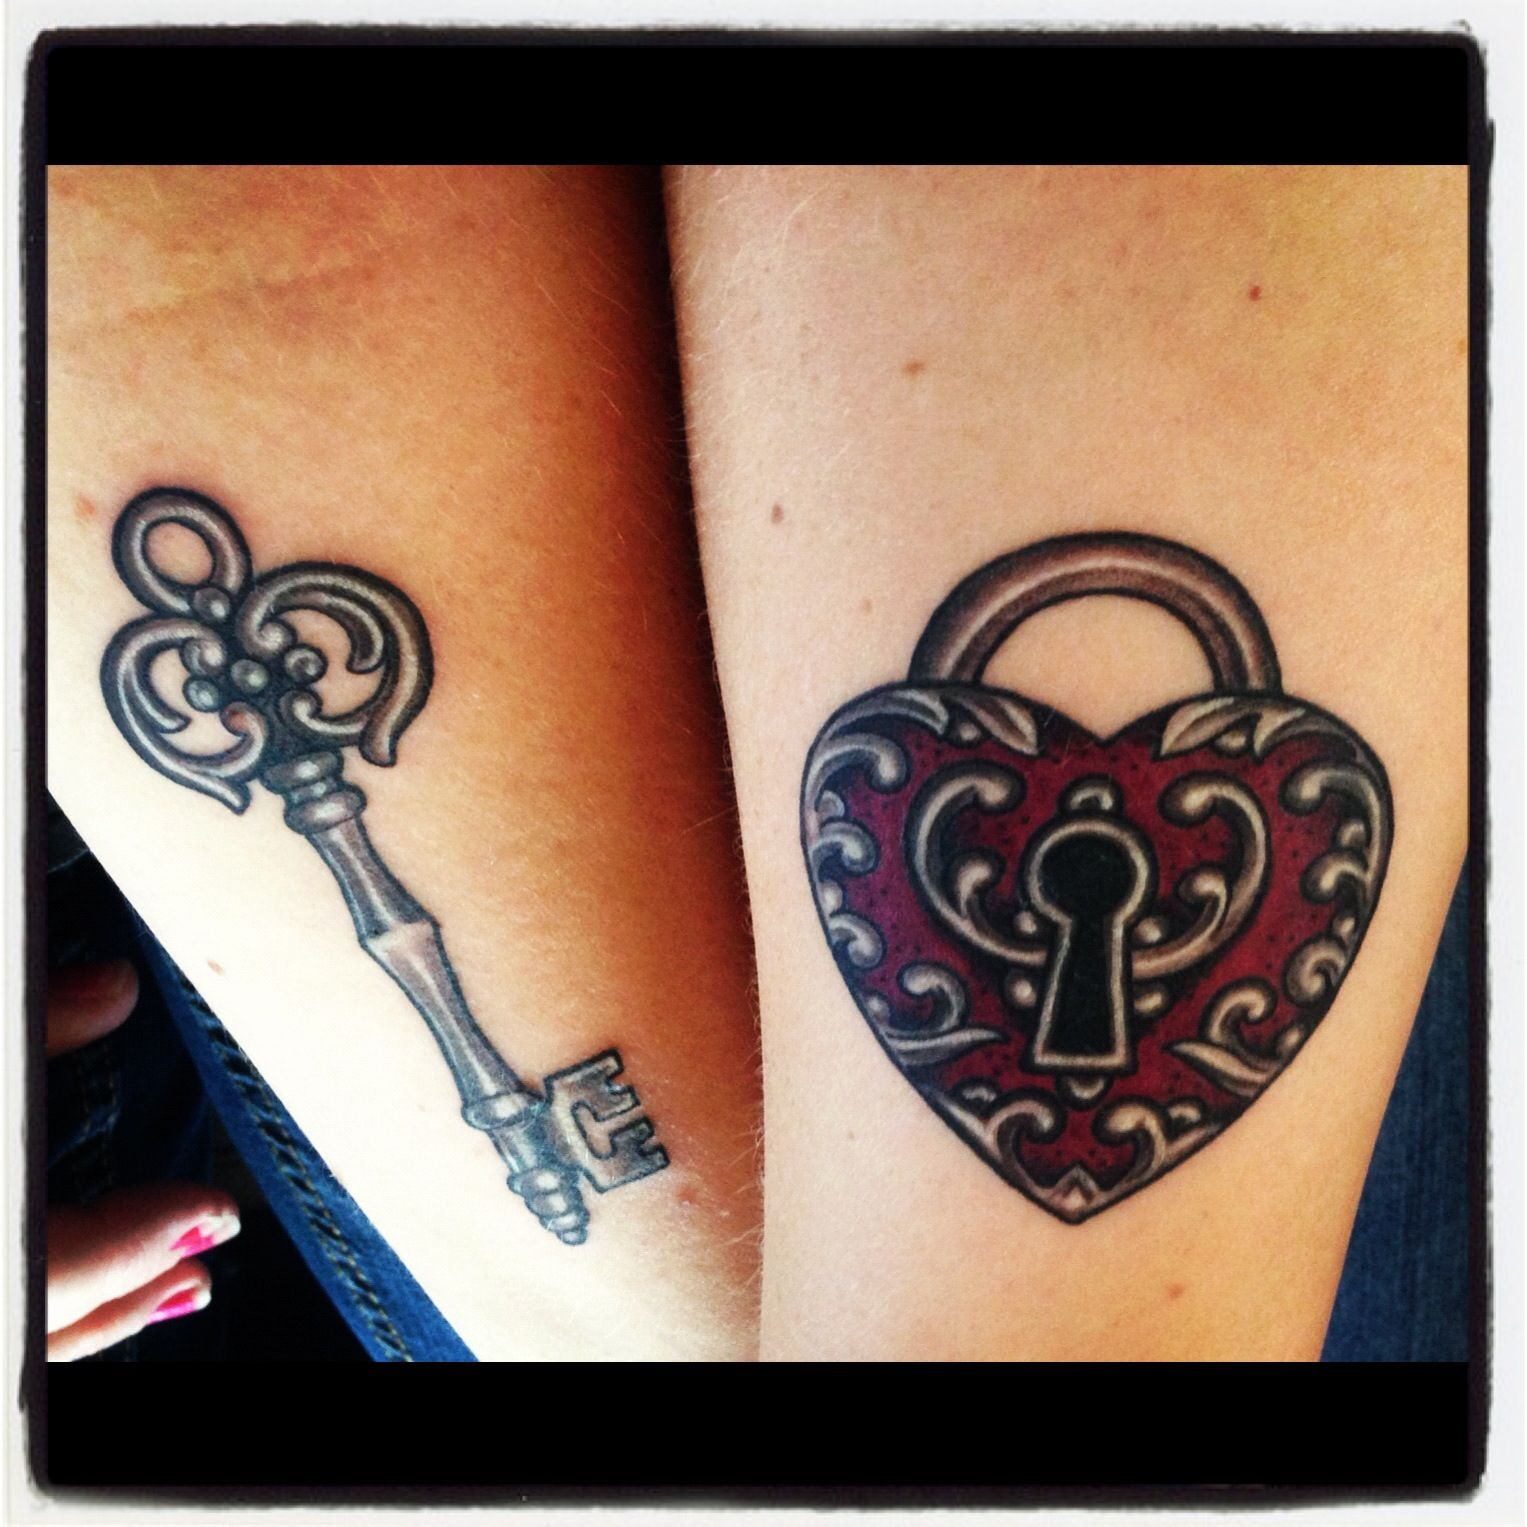 AWESOME!!! I've been debating on these two tats (key and lock) This is perfect!!!  best friend tattoo idea for me and MICKI (: